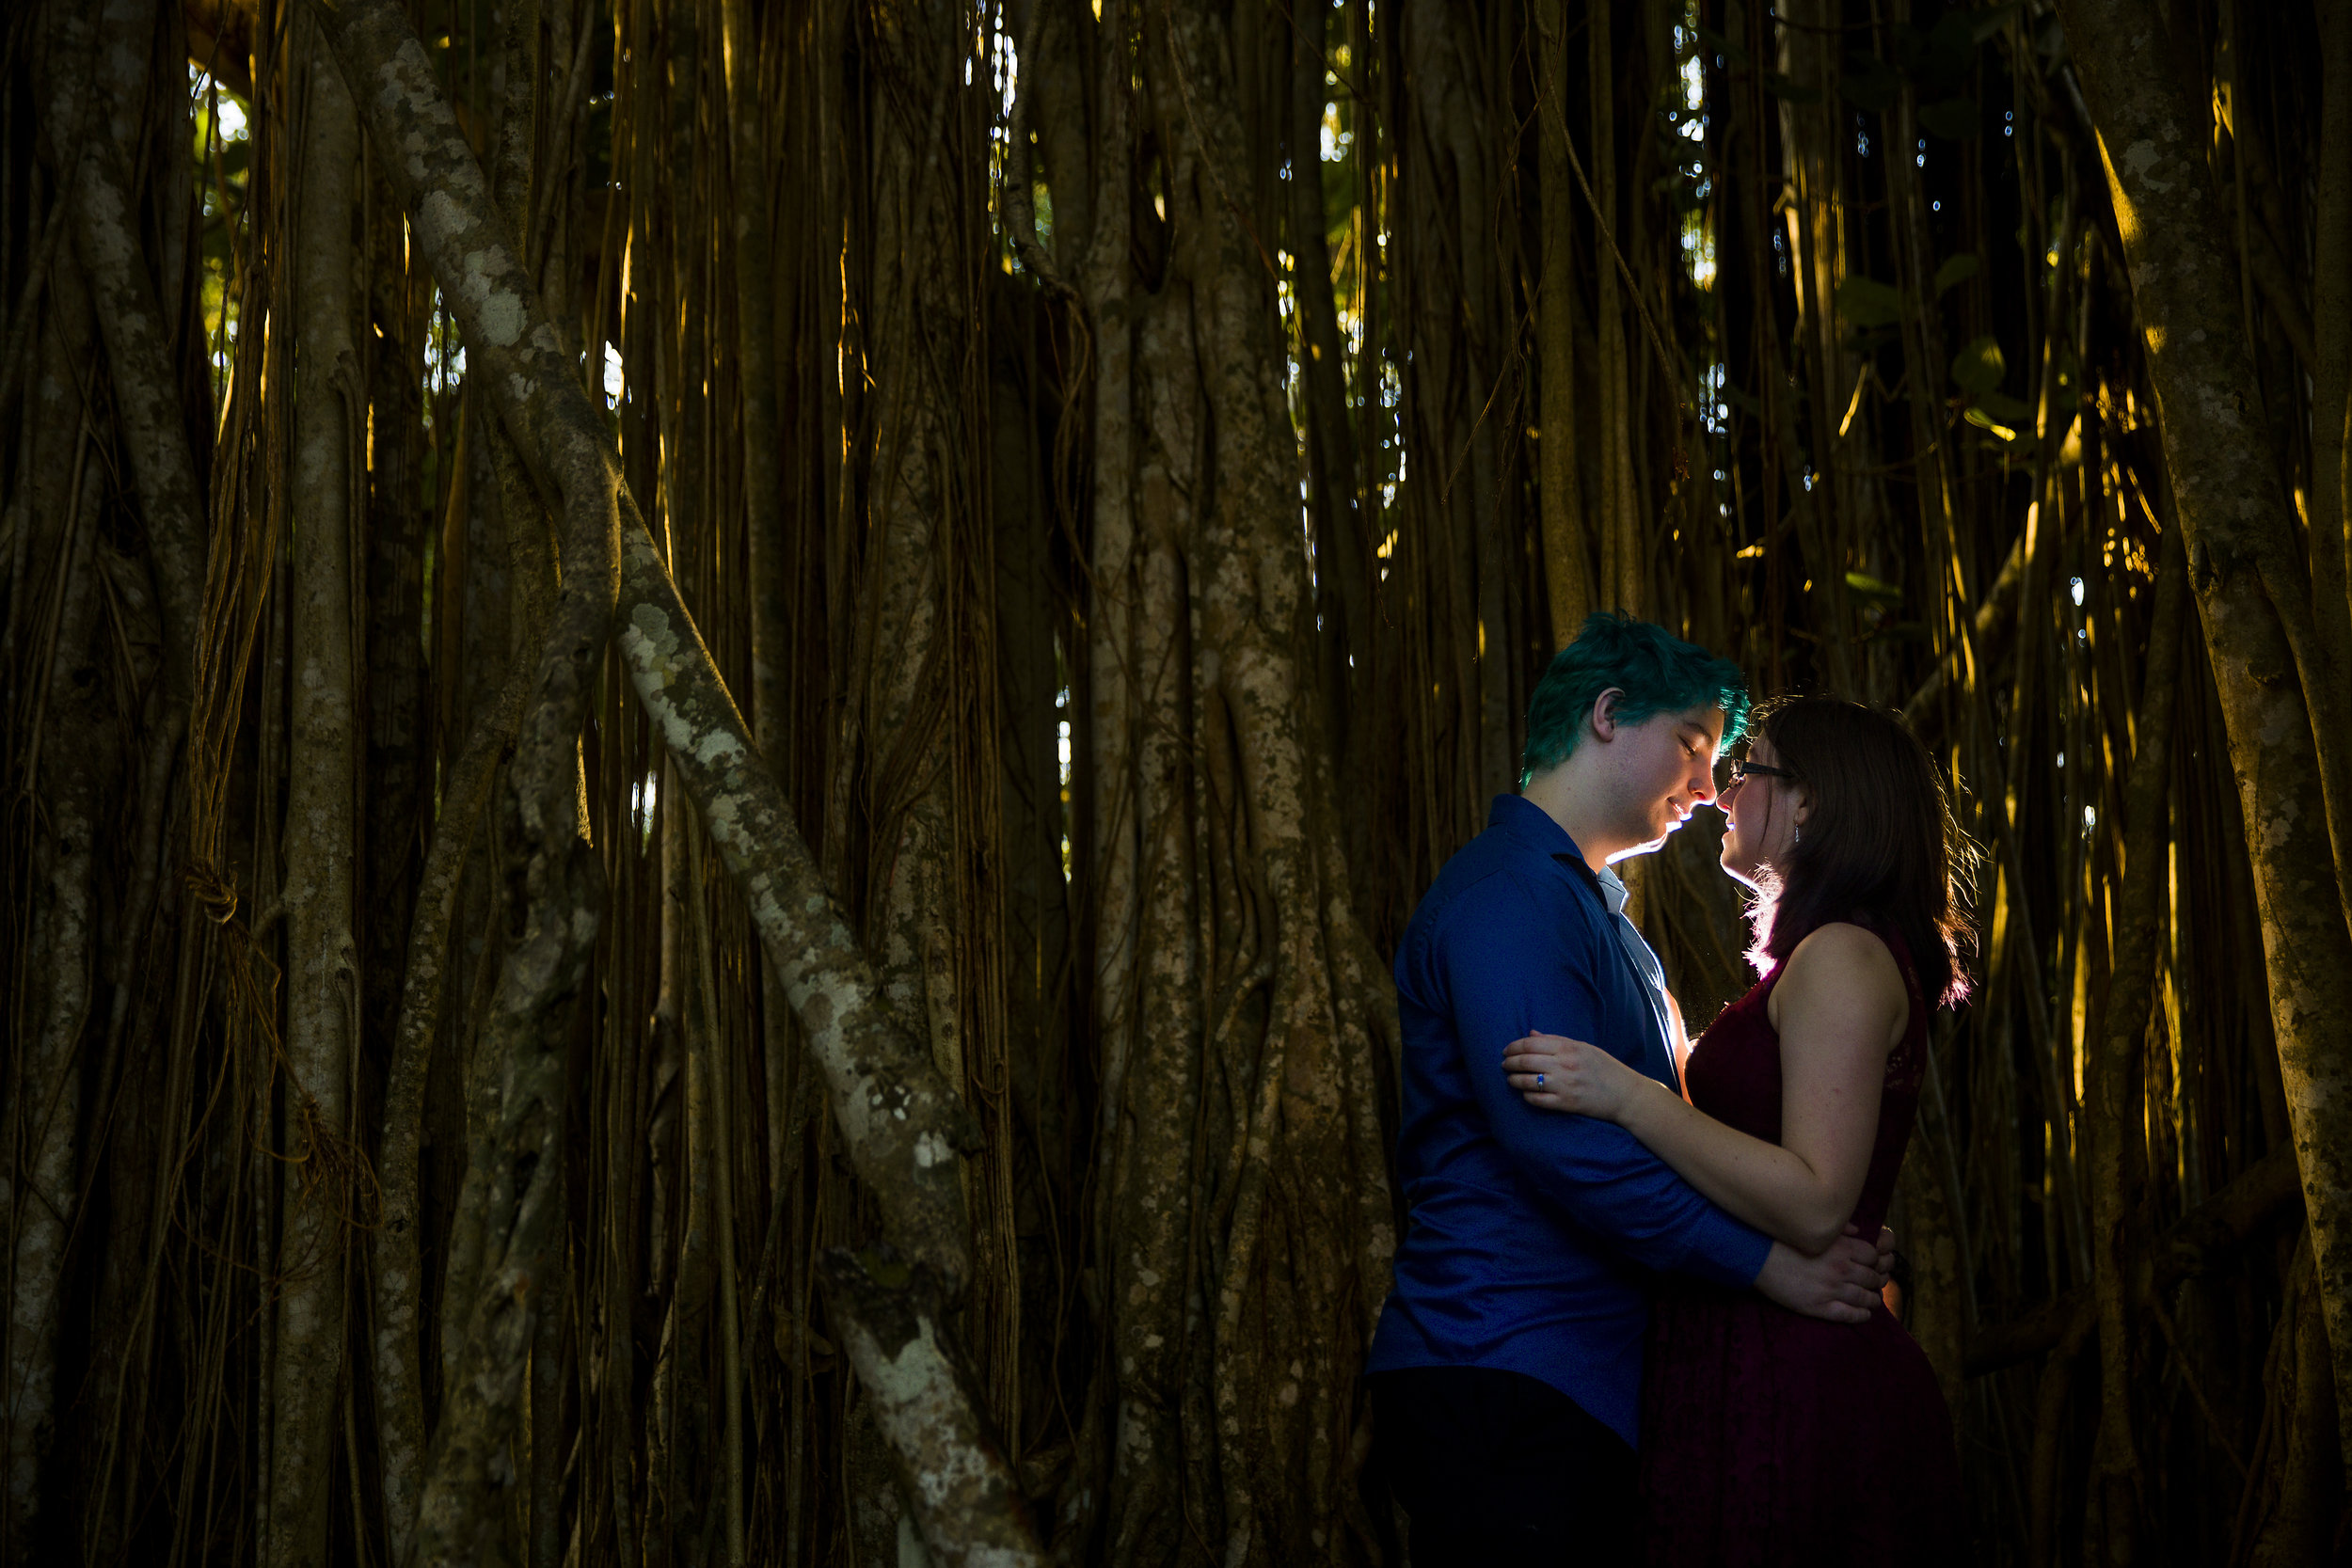 davie-tree-tops-park-engagement-photos-334.jpg